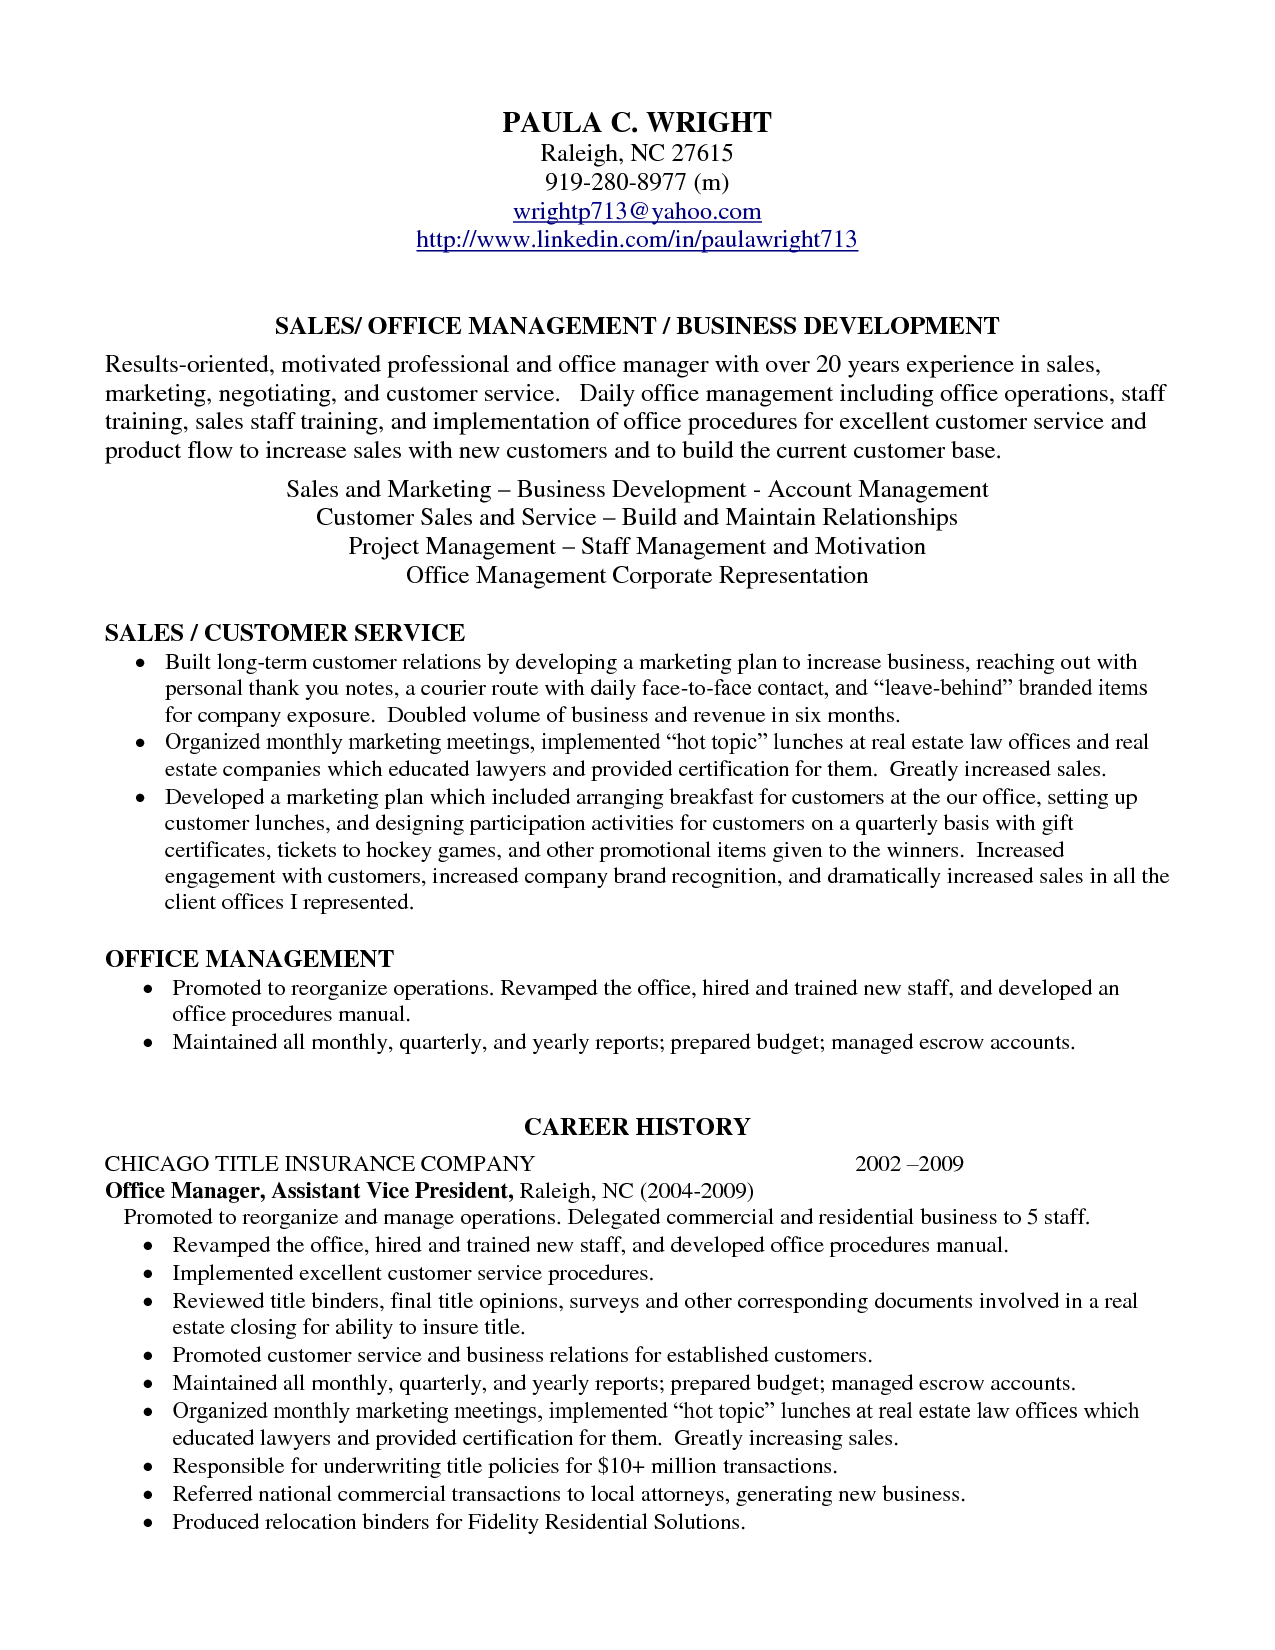 Summary For Marketing Resume Professional Profile Resume Examples Resume Professional